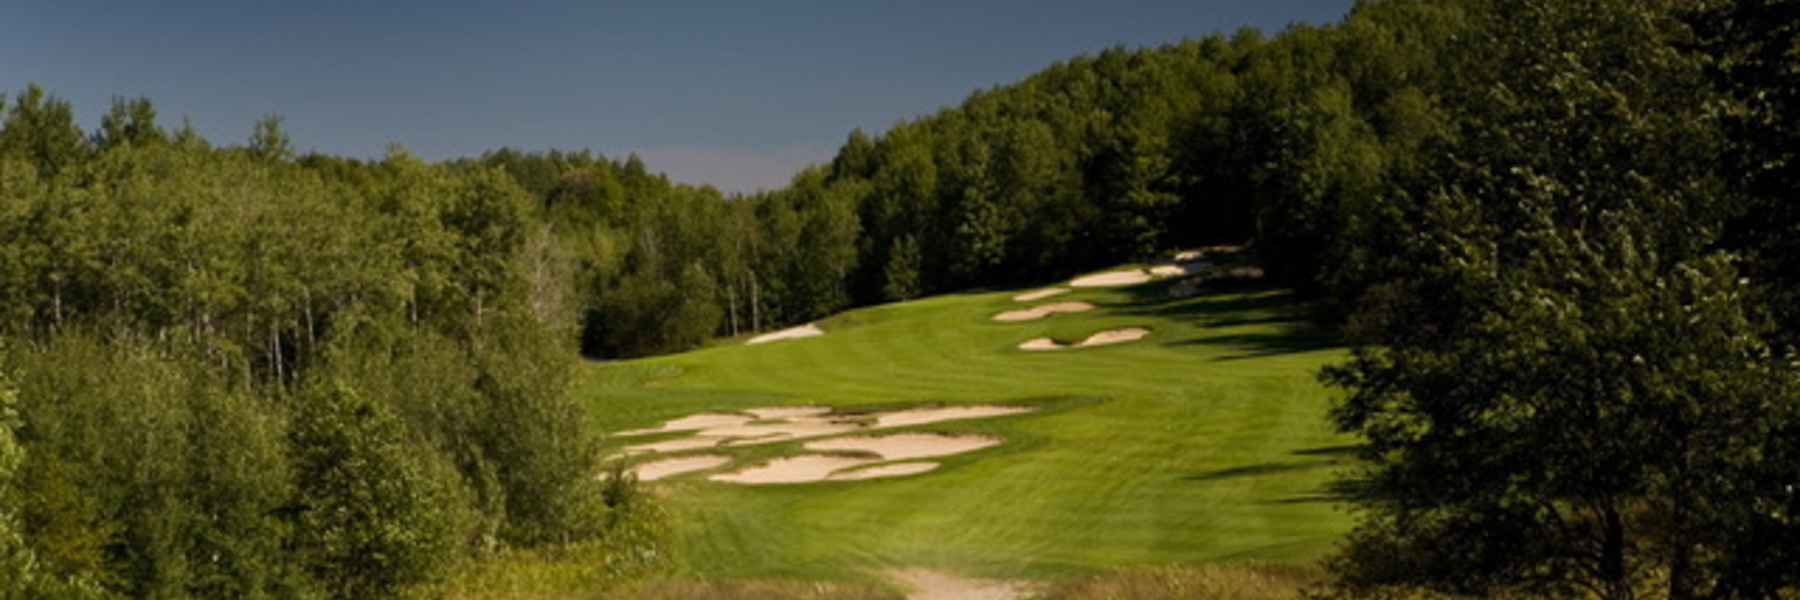 Golf Vacation Package - Treetops Stay and Play for $239 per person, per day!